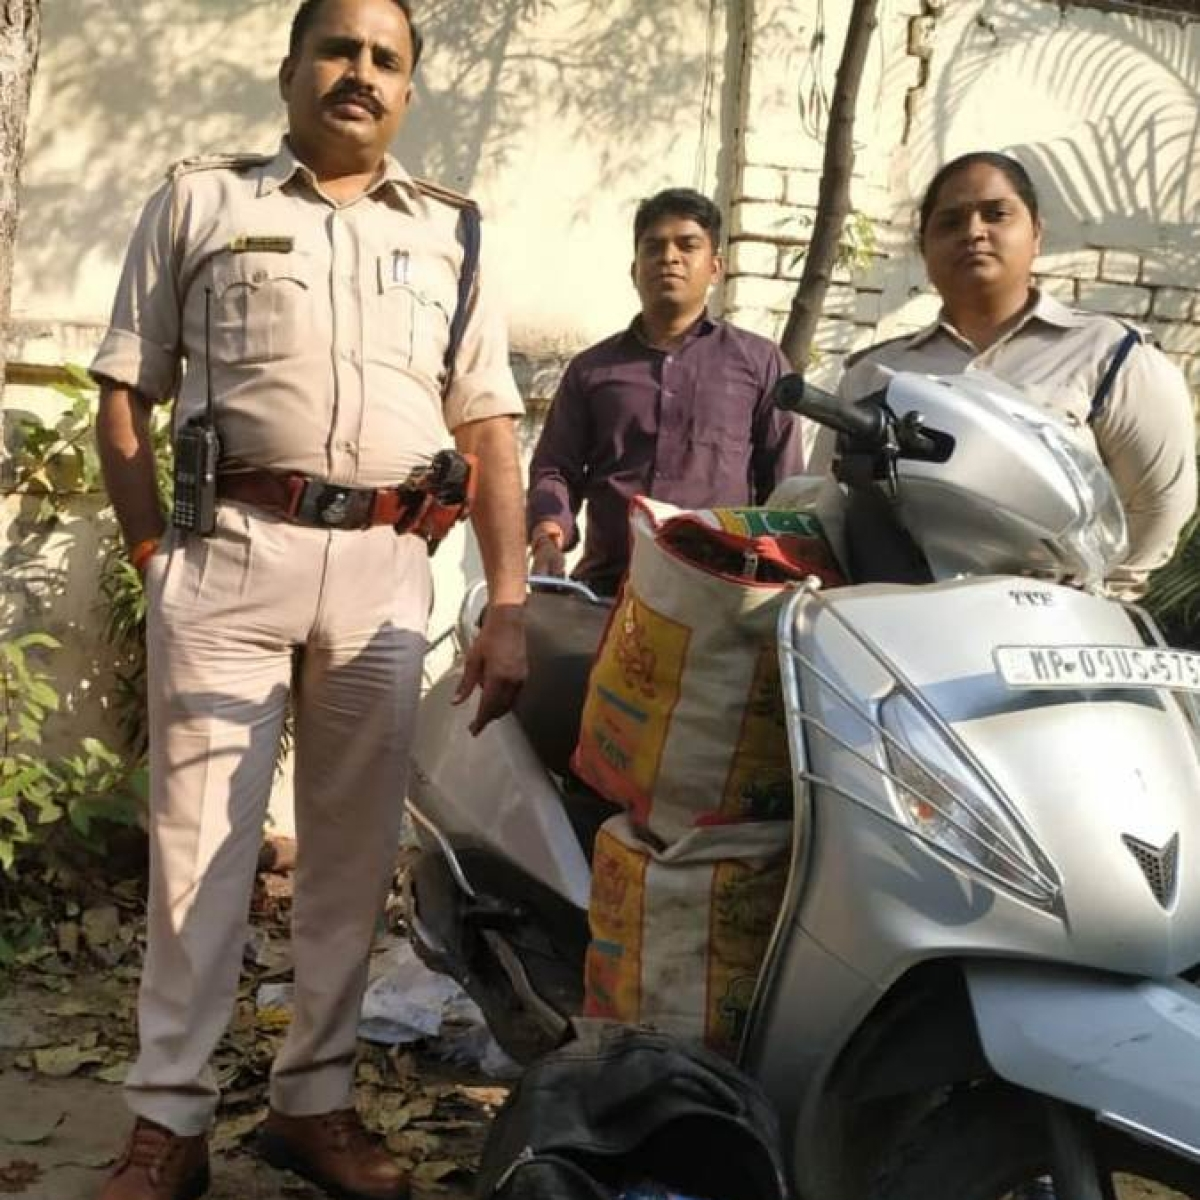 Indore: Liquor seized